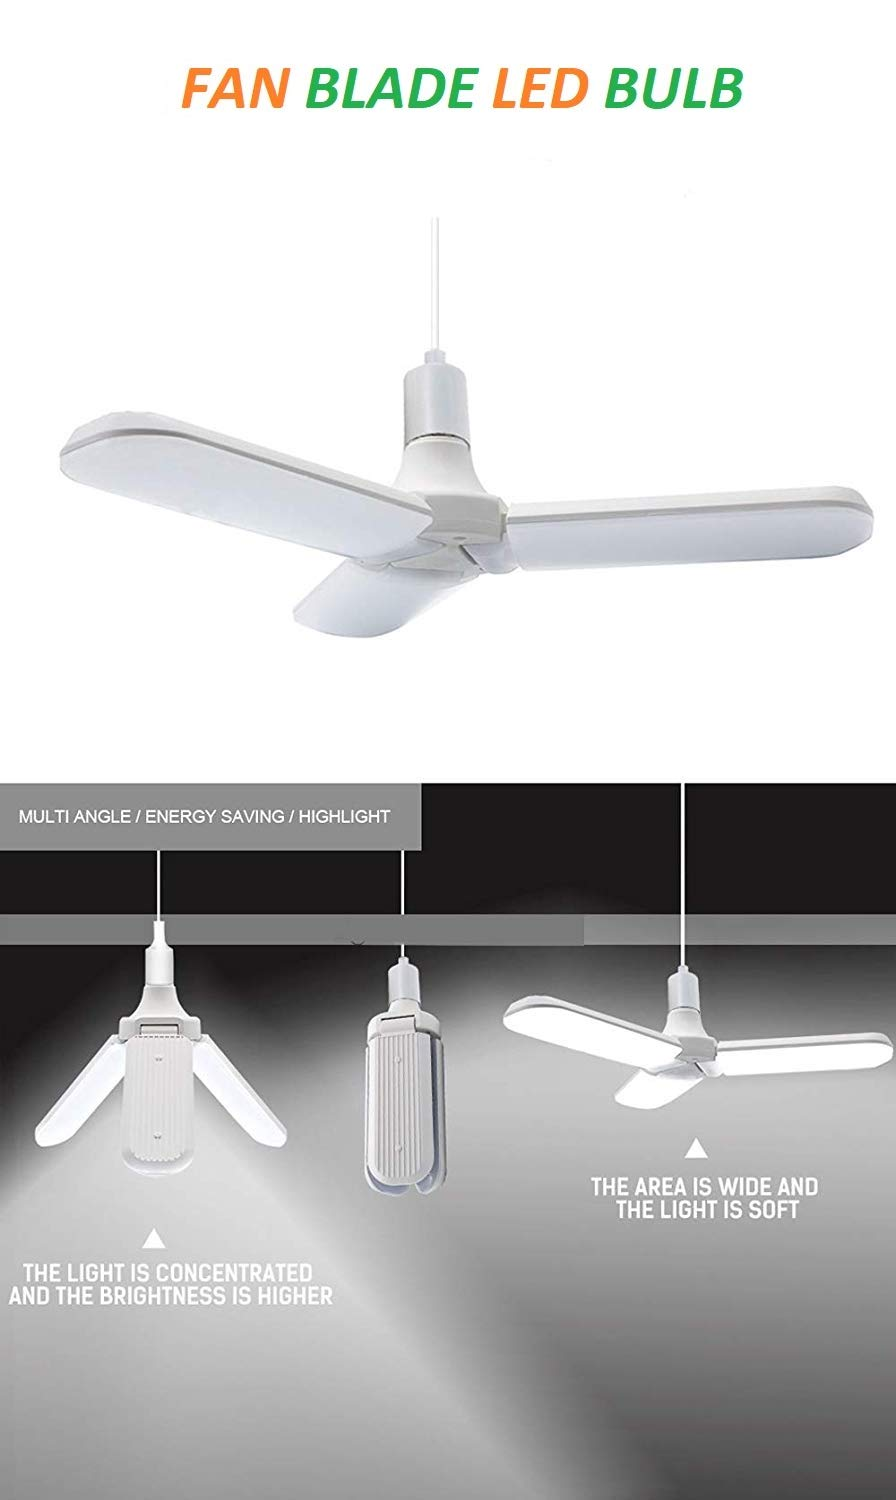 New Fan Shape Blade Design LED Bulb for Home and Office - White - (Pcs-1)